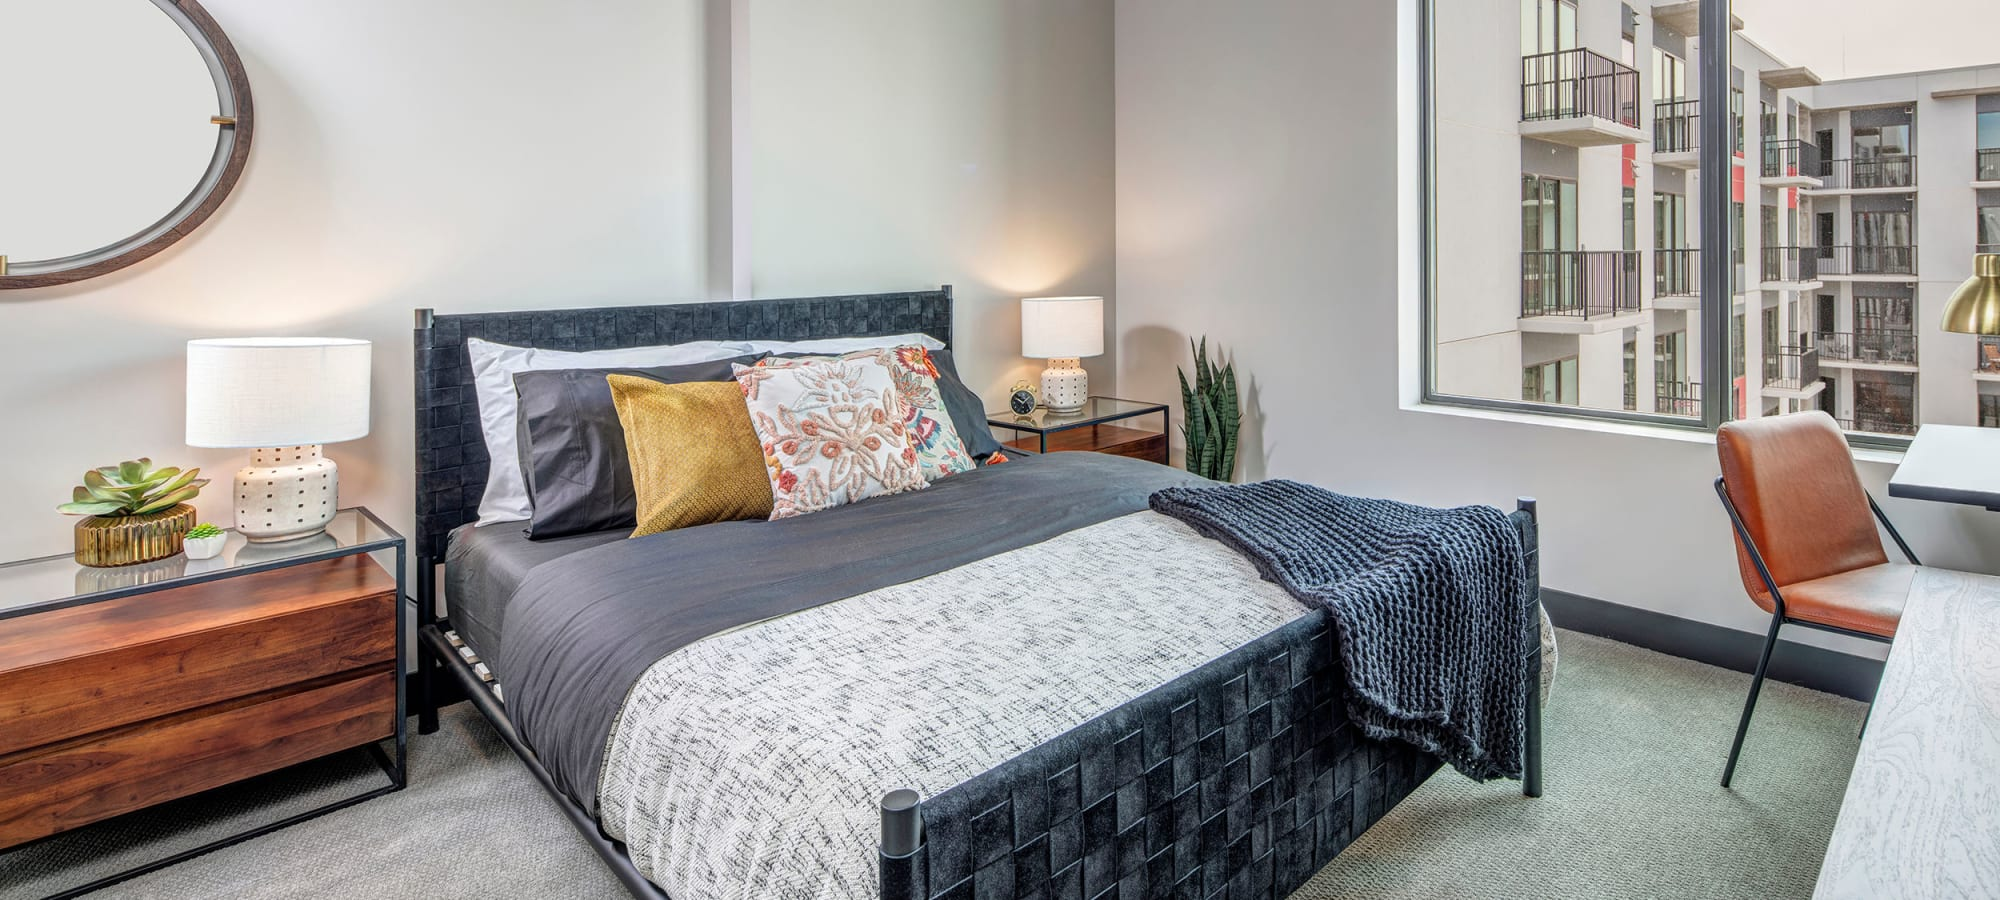 Spacious bedroom with decor at The Local Apartments in Tempe, Arizona